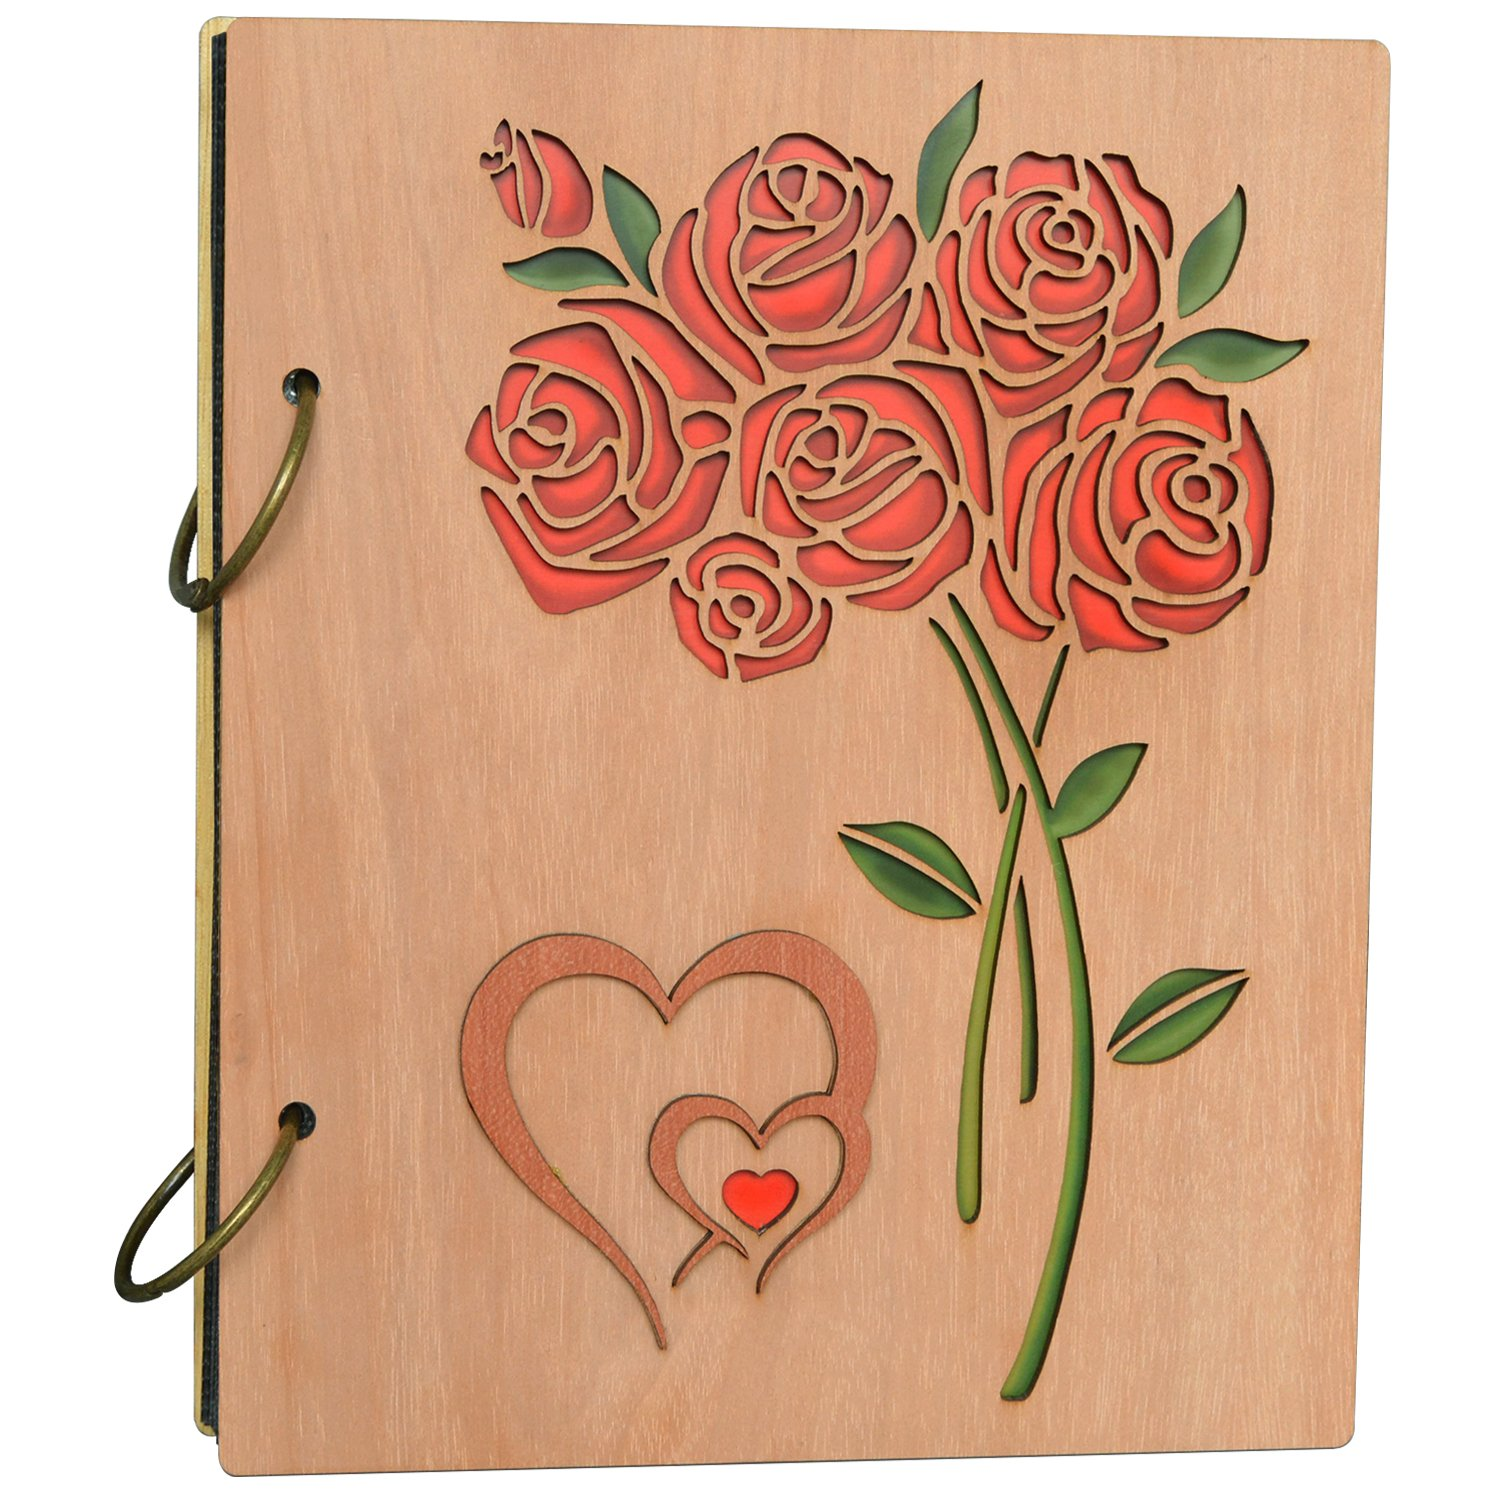 Cossyhome Double Heart Roses Photo Album 4x6 Photo Book Albums Hold 120 Pictures 4 by 6 inch